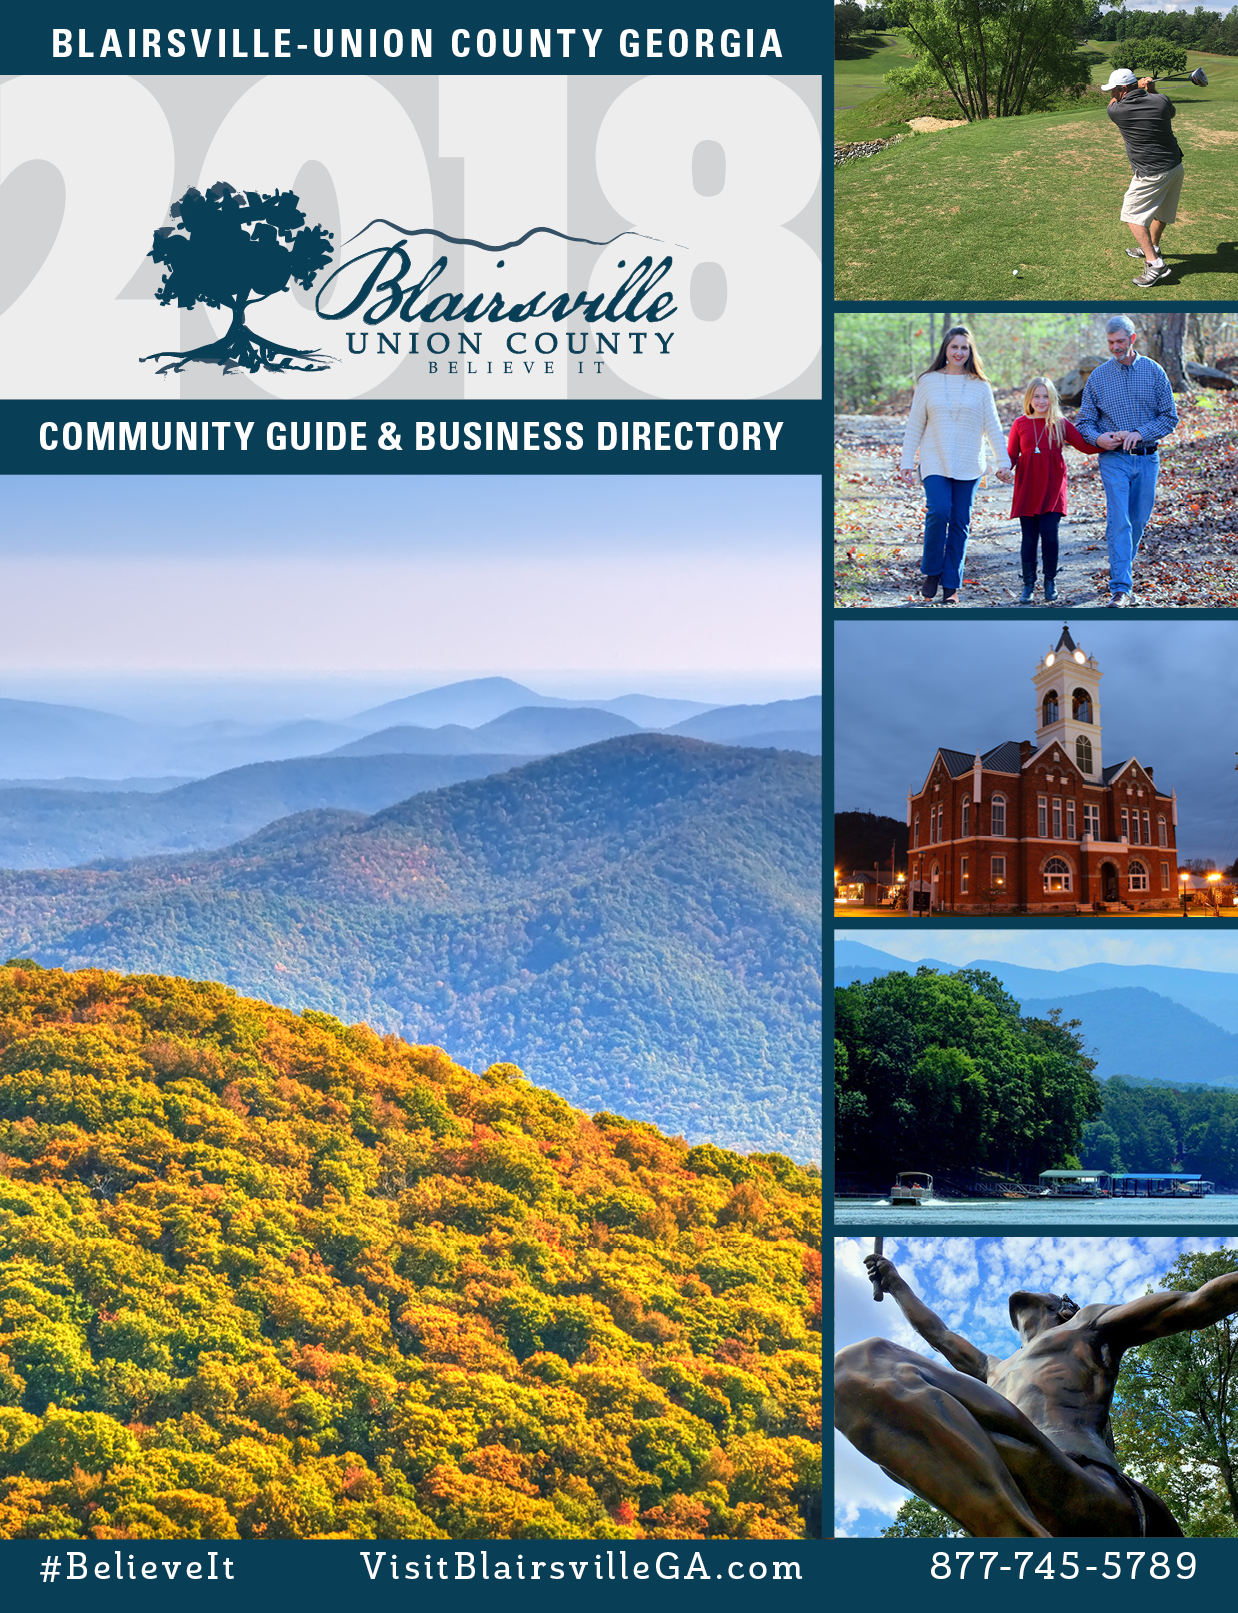 Community Guide & Business Directory